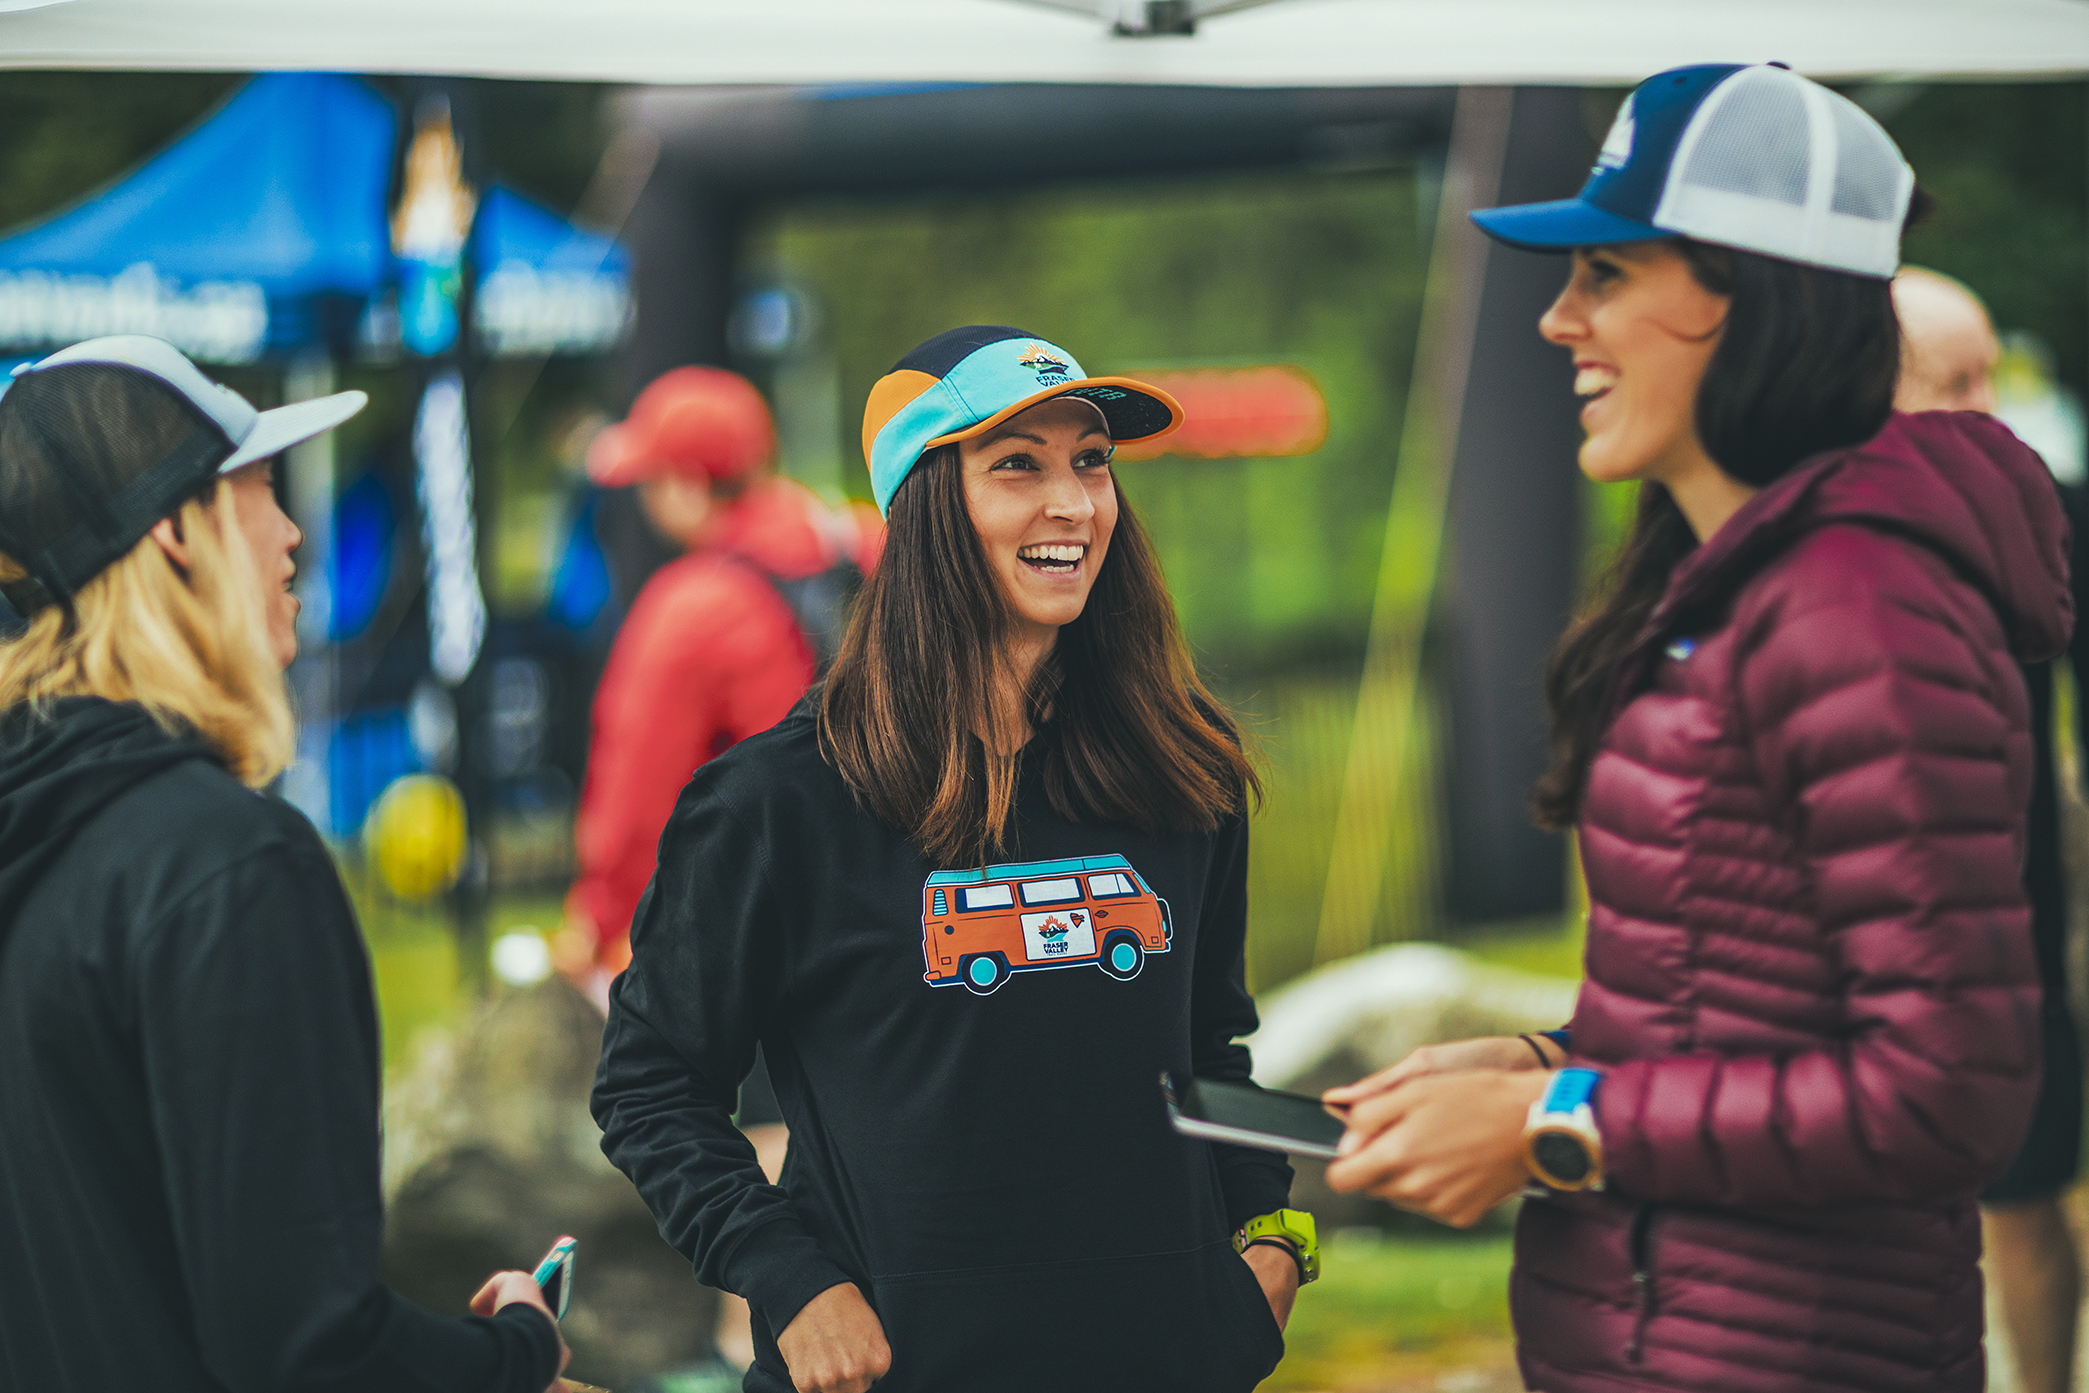 Fraser Valley Trail Races - Bear Mountain - IMG_1243 by Brice Ferre Studio - Vancouver Portrait Adventure and Athlete Photographer.jpg